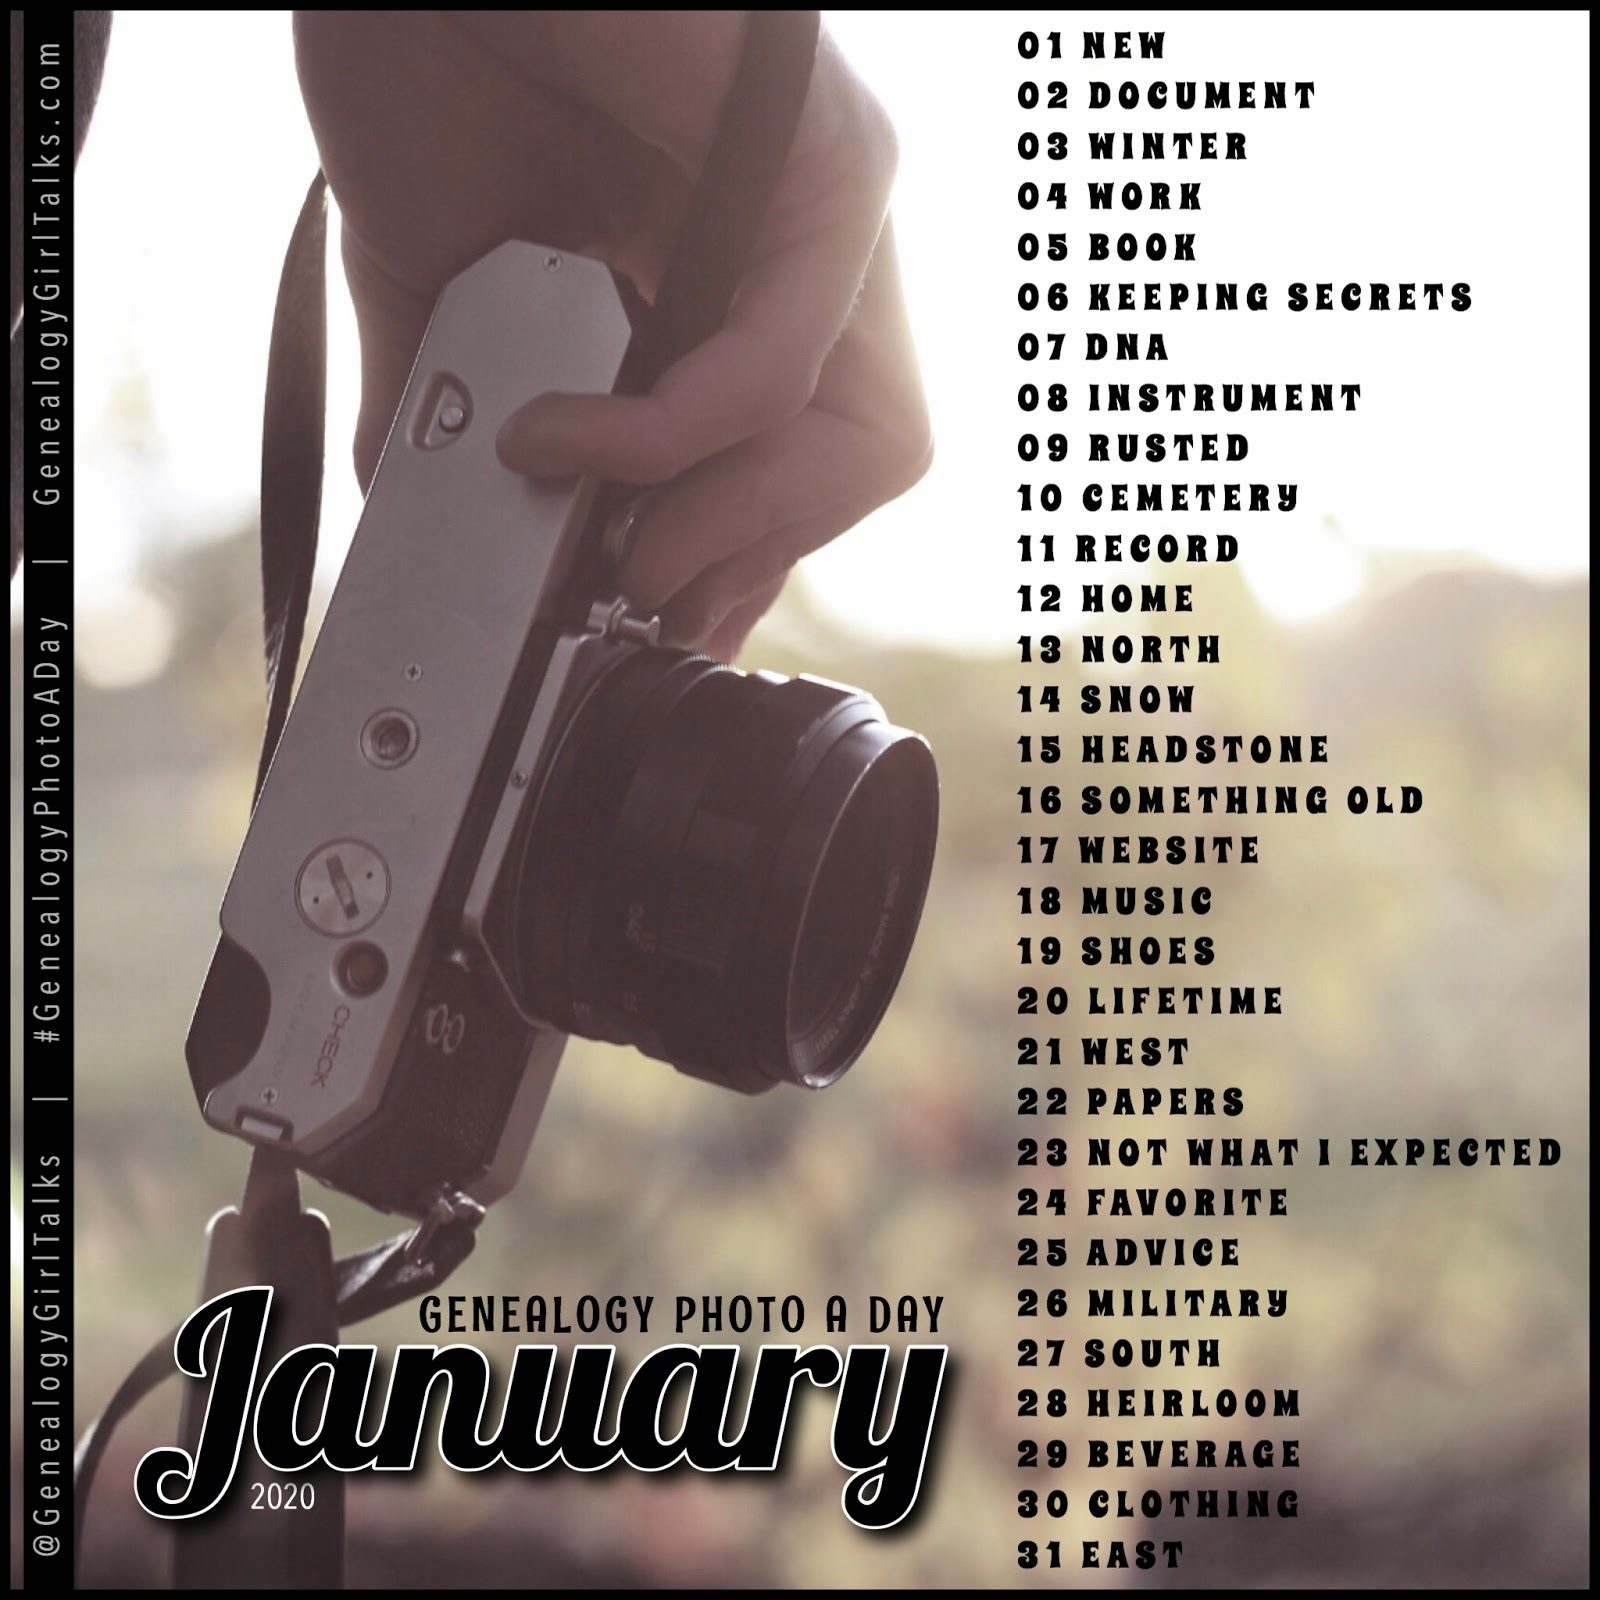 January 2020 Genealogy Photo A Day daily prompts from Genealogy Girl Talks #Genealogy #FamilyHistory #GenealogyPhotoADay